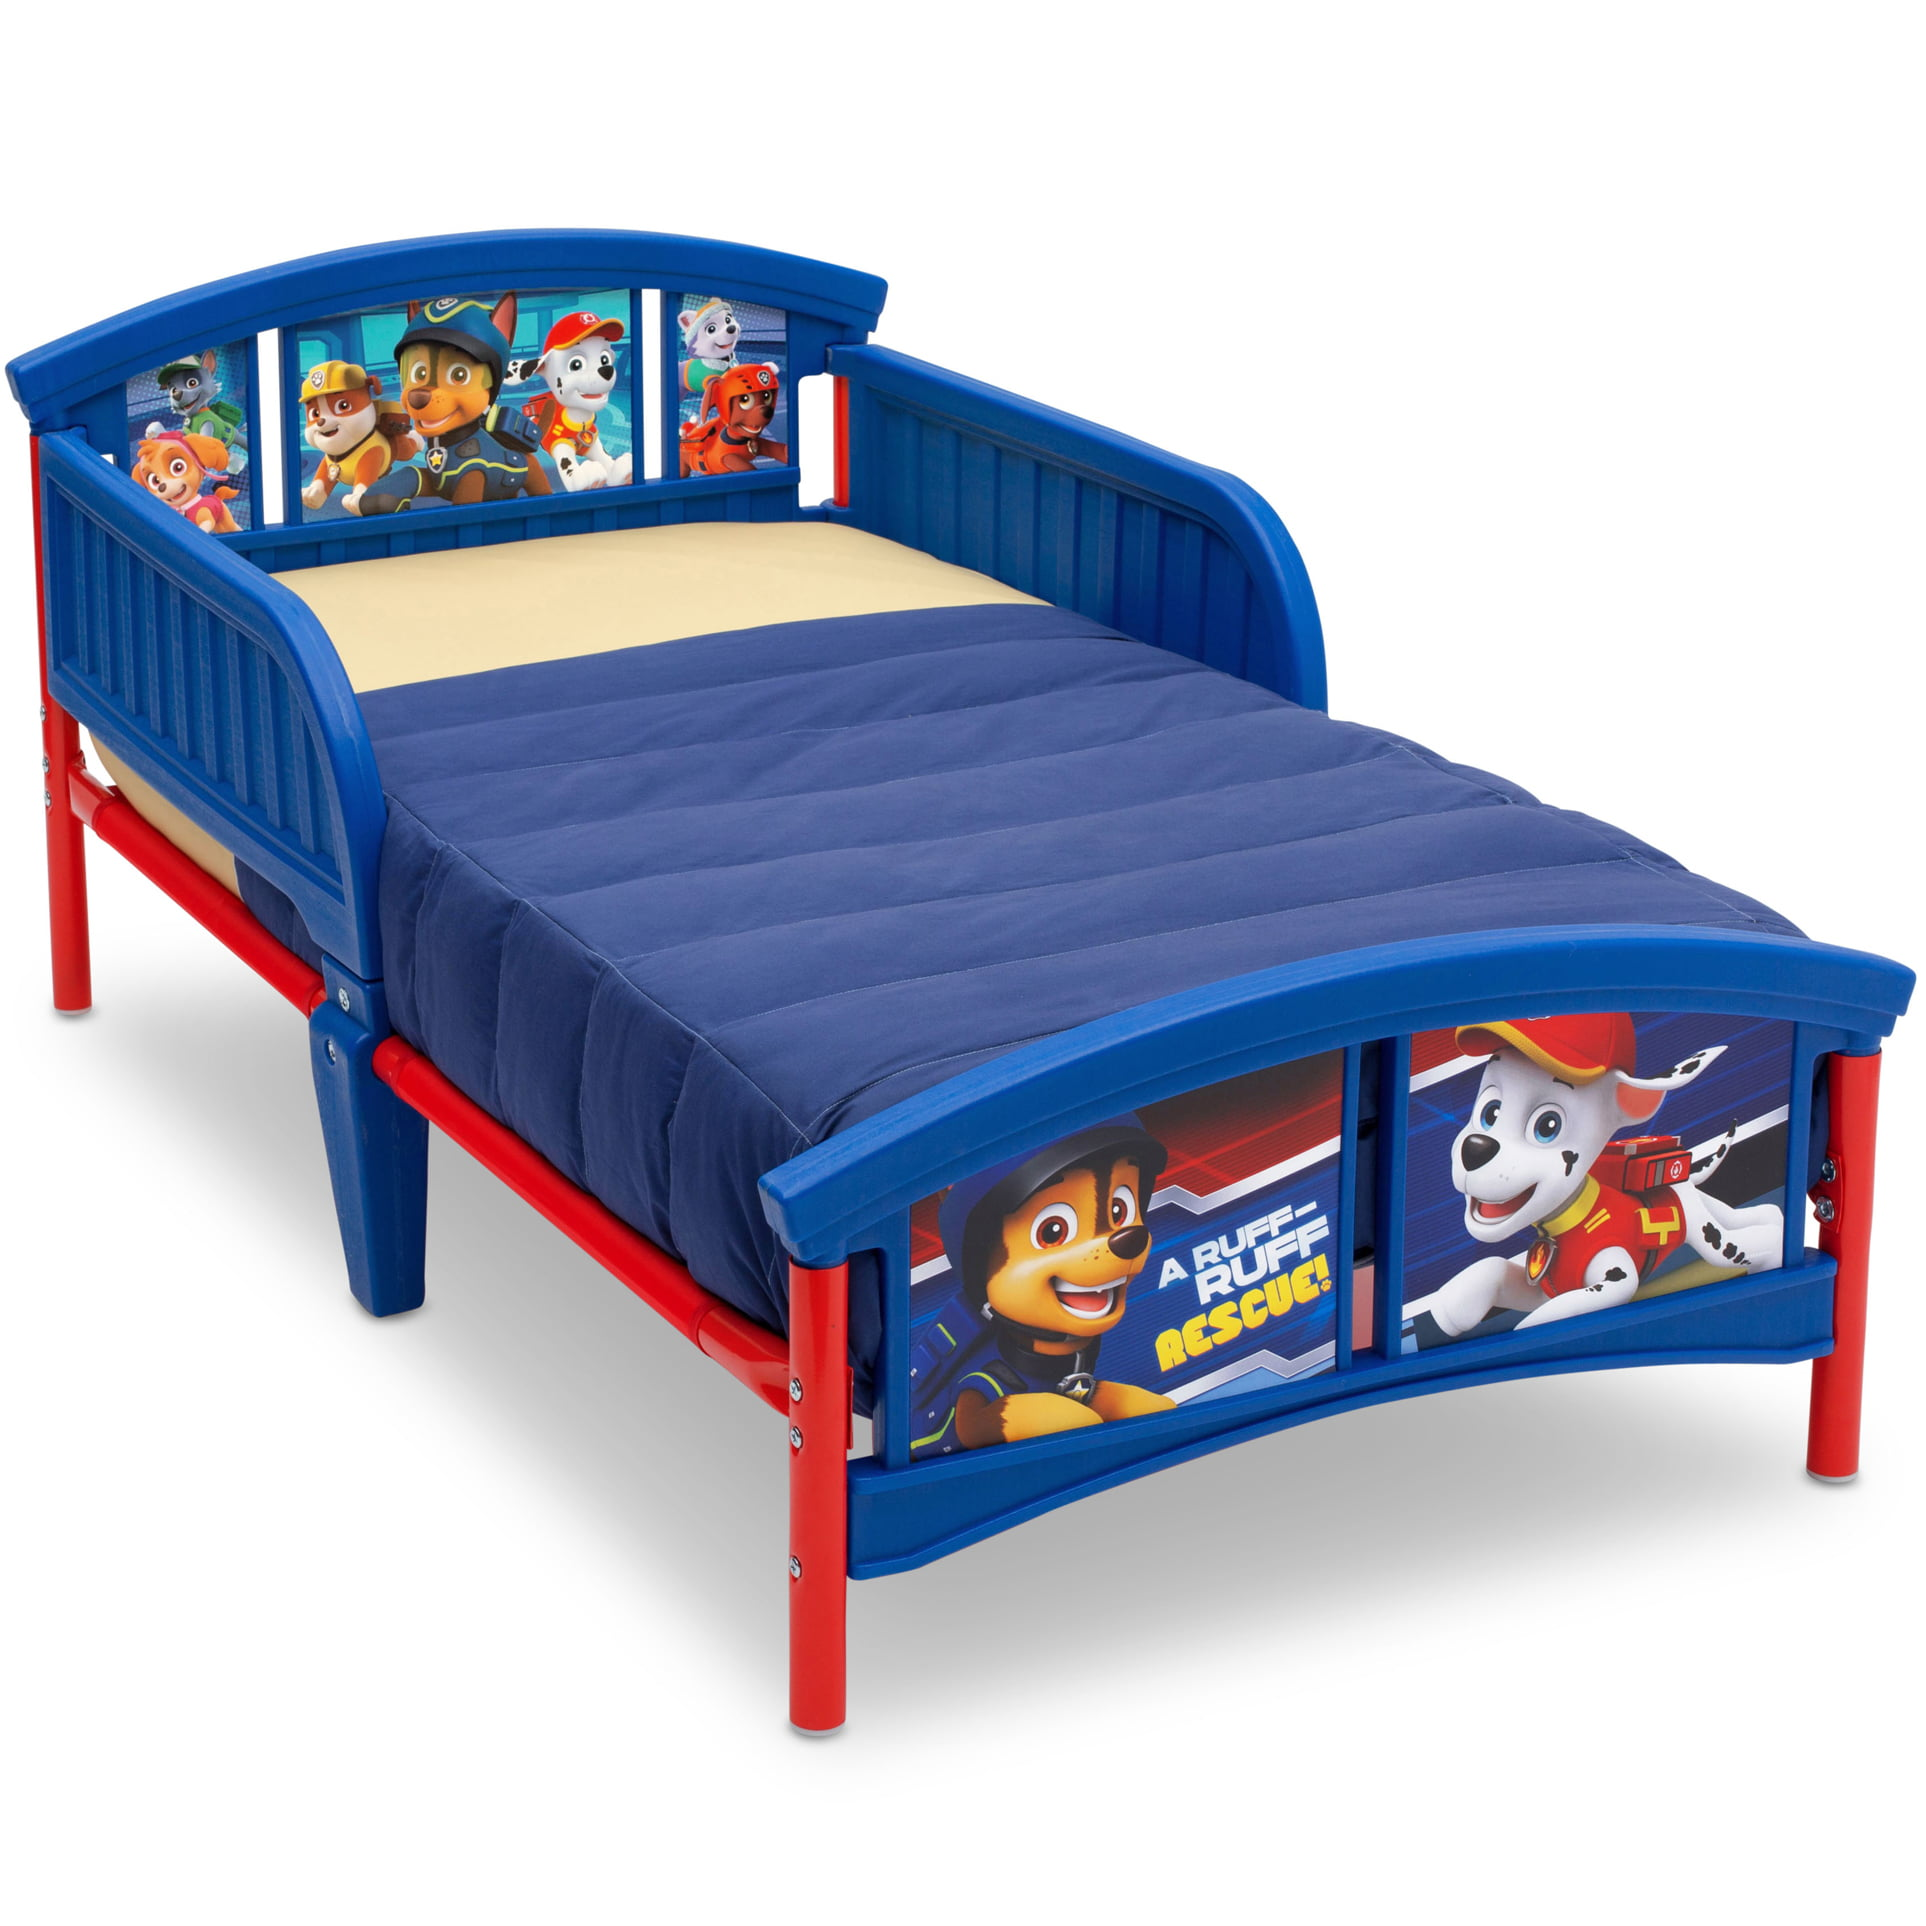 Toddler Beds Walmart Com